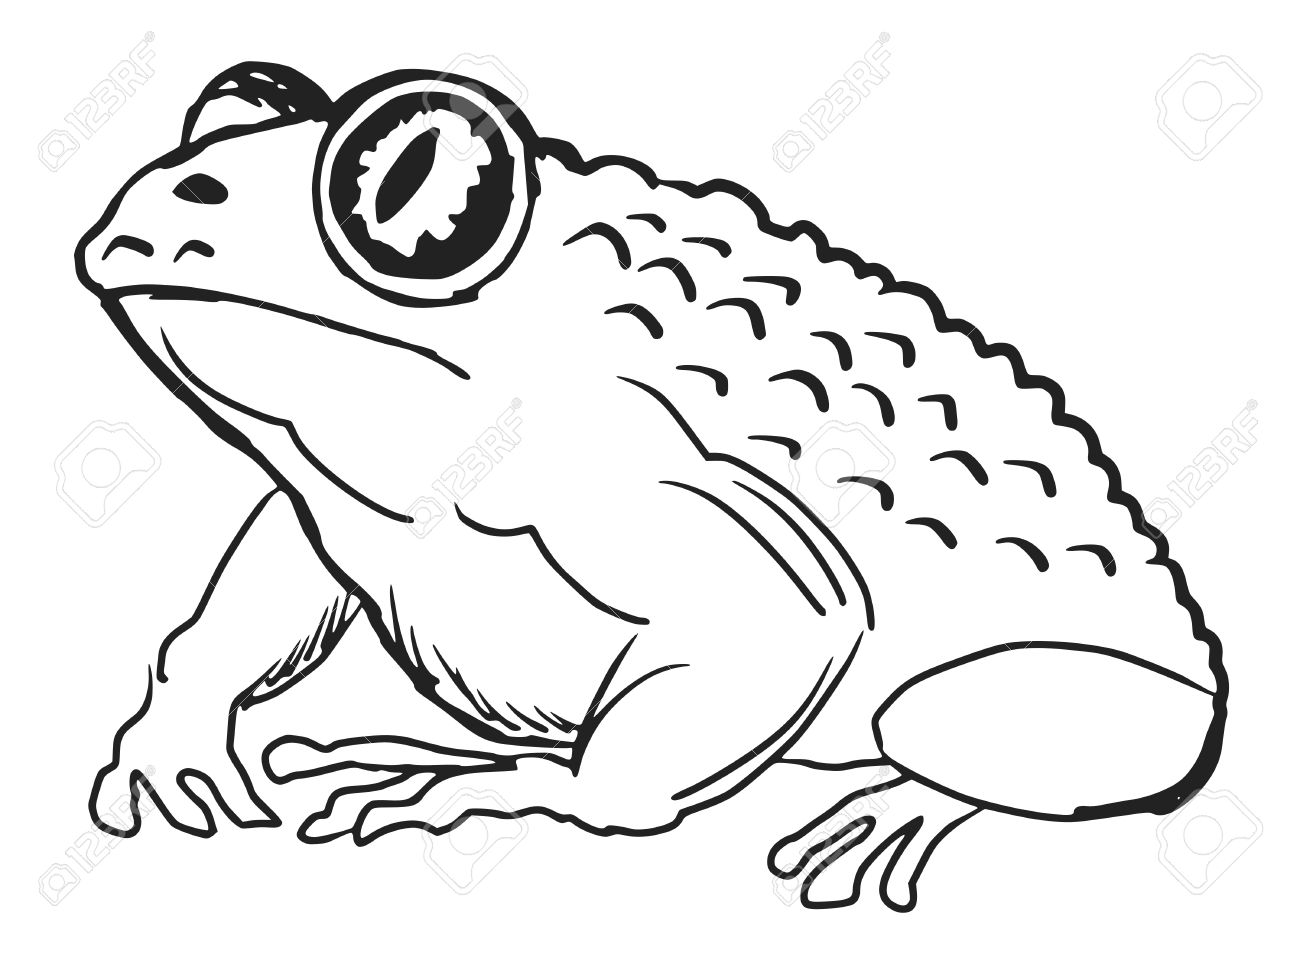 Cane Toad clipart #12, Download drawings